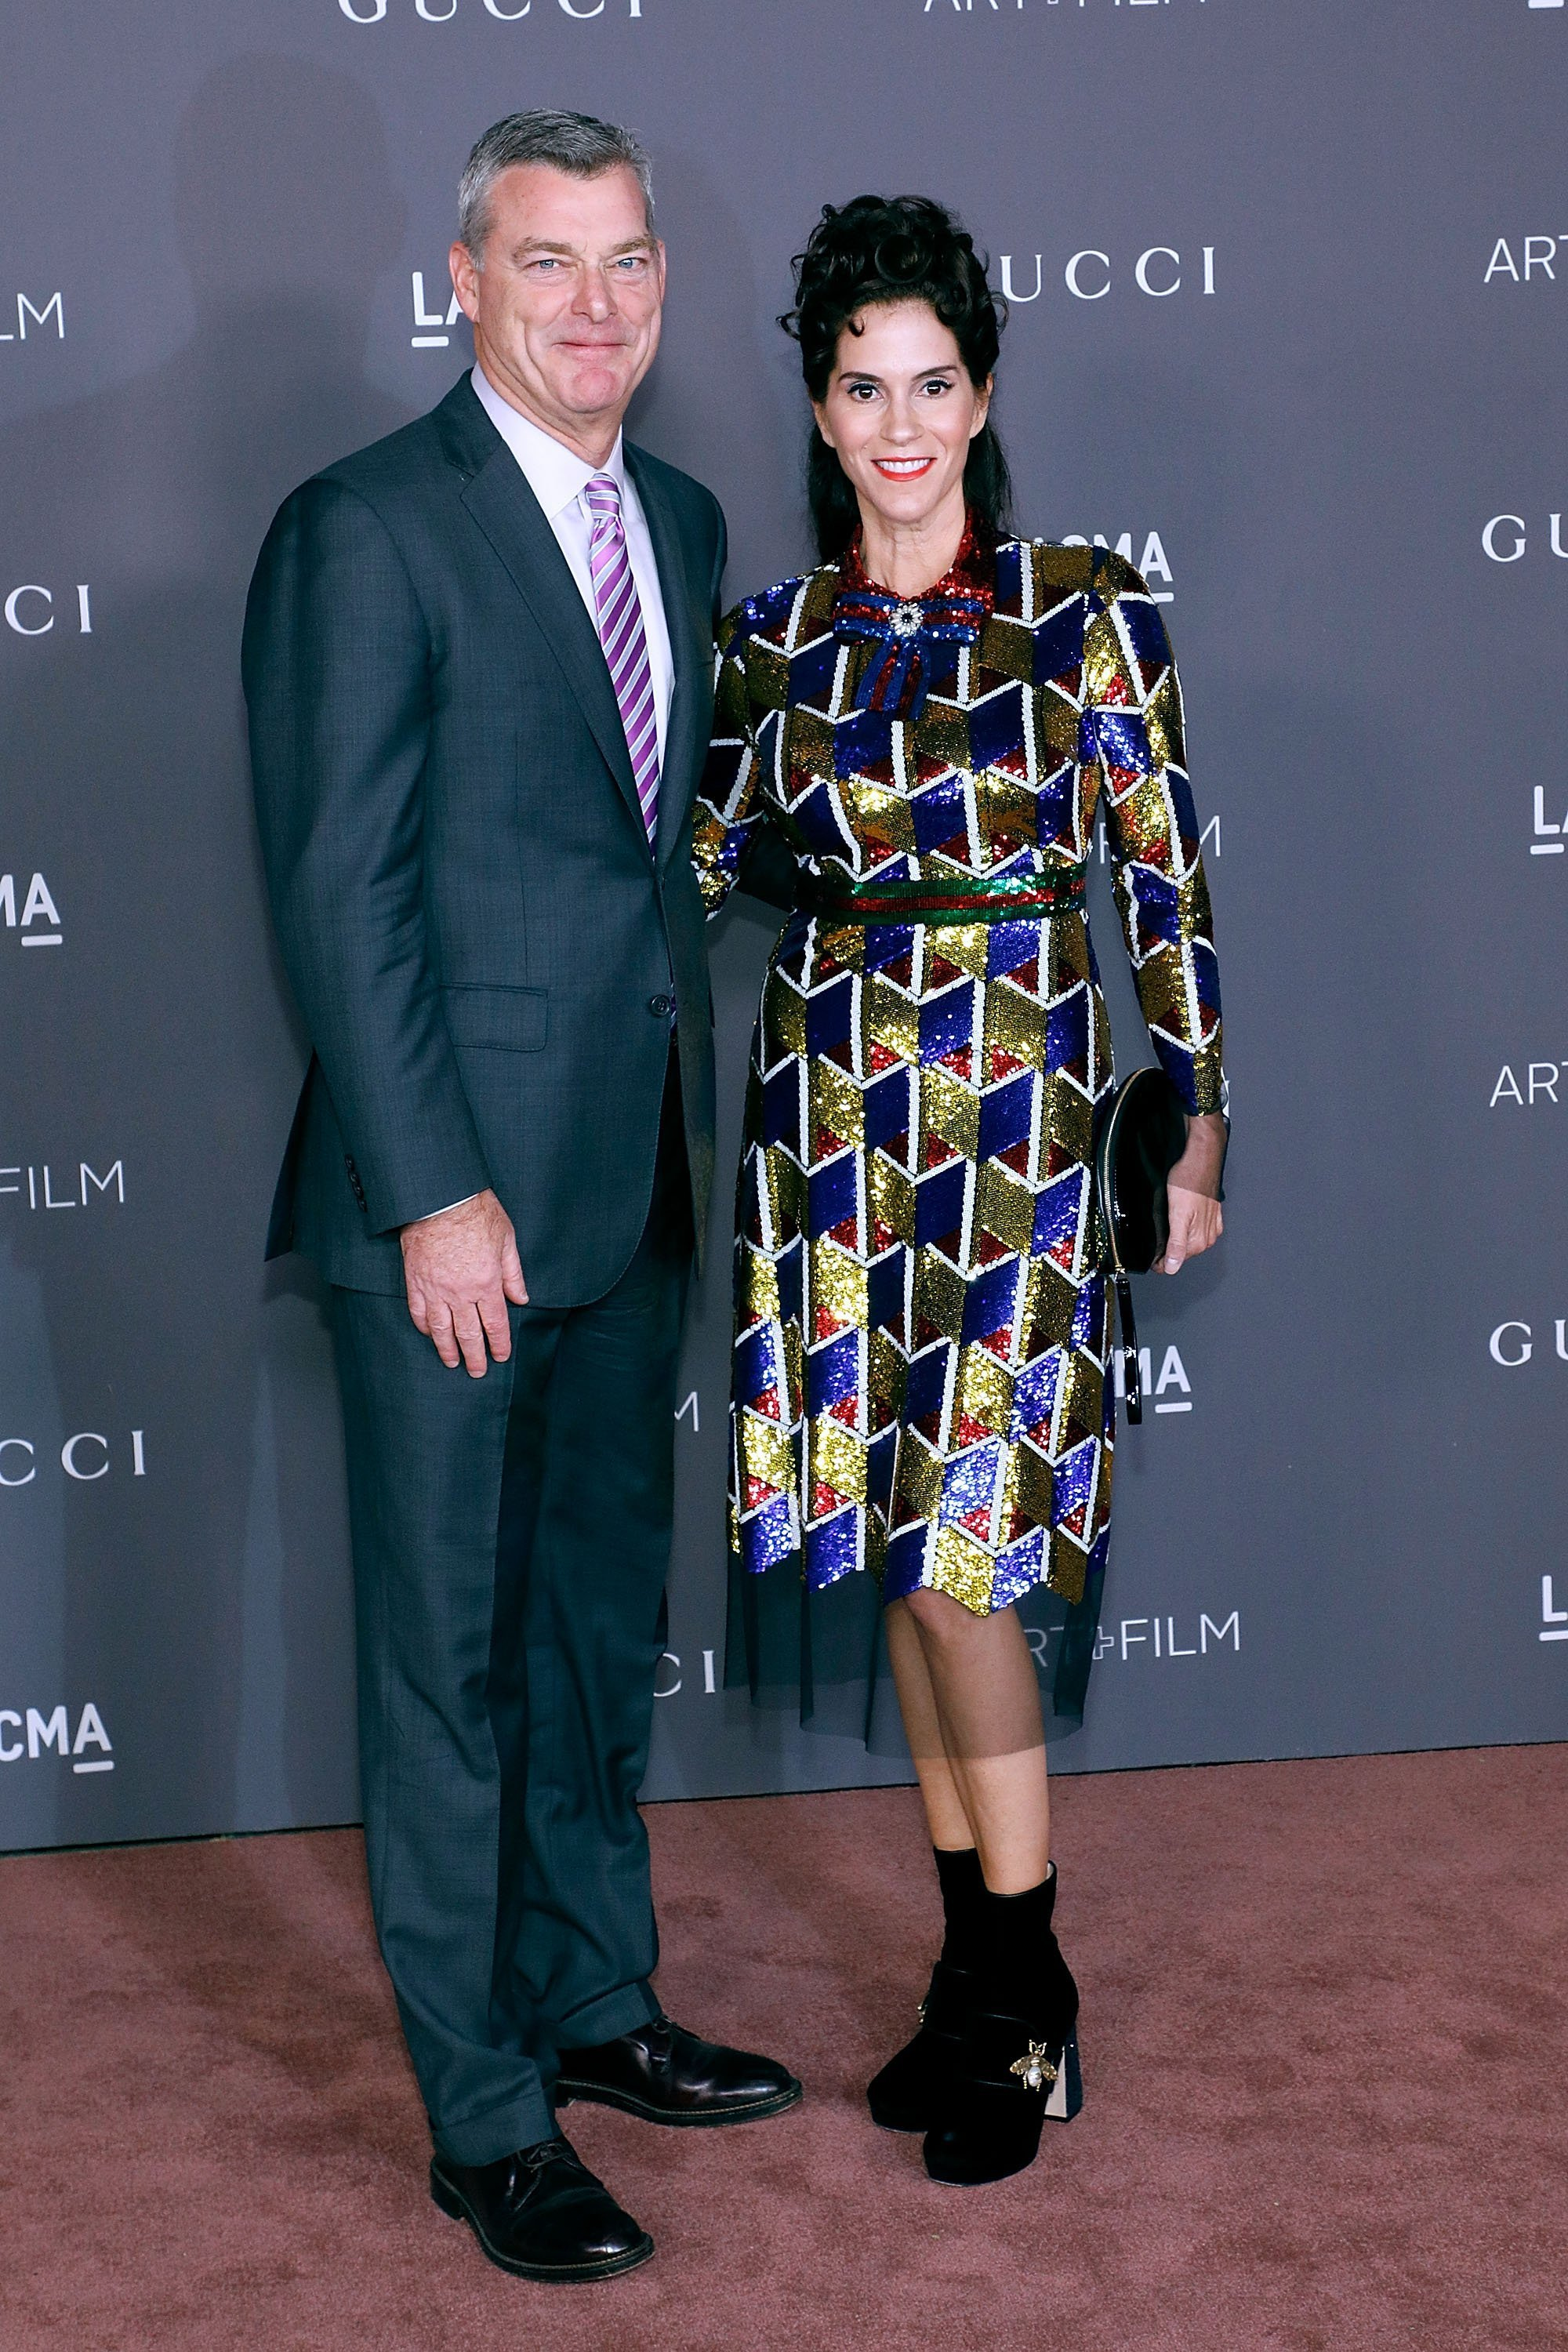 Antony Ressler and Jami Gertz attend the 2017 LACMA Art + Film Gala. | Source: Getty Images